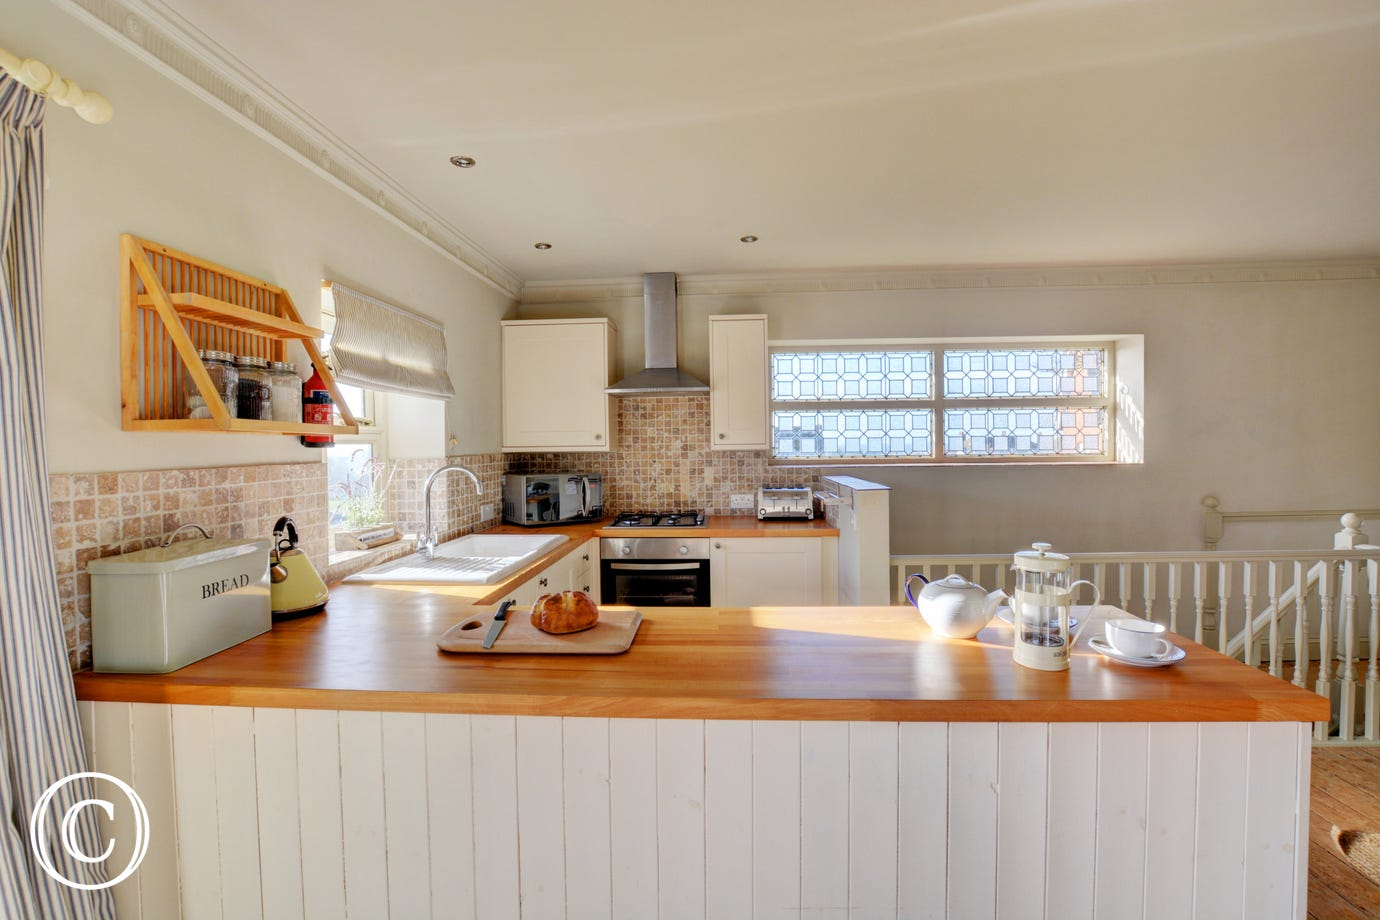 Fitted and equipped kitchen with  built-in electric oven with grill, gas hob, larder fridge, dishwasher and microwave